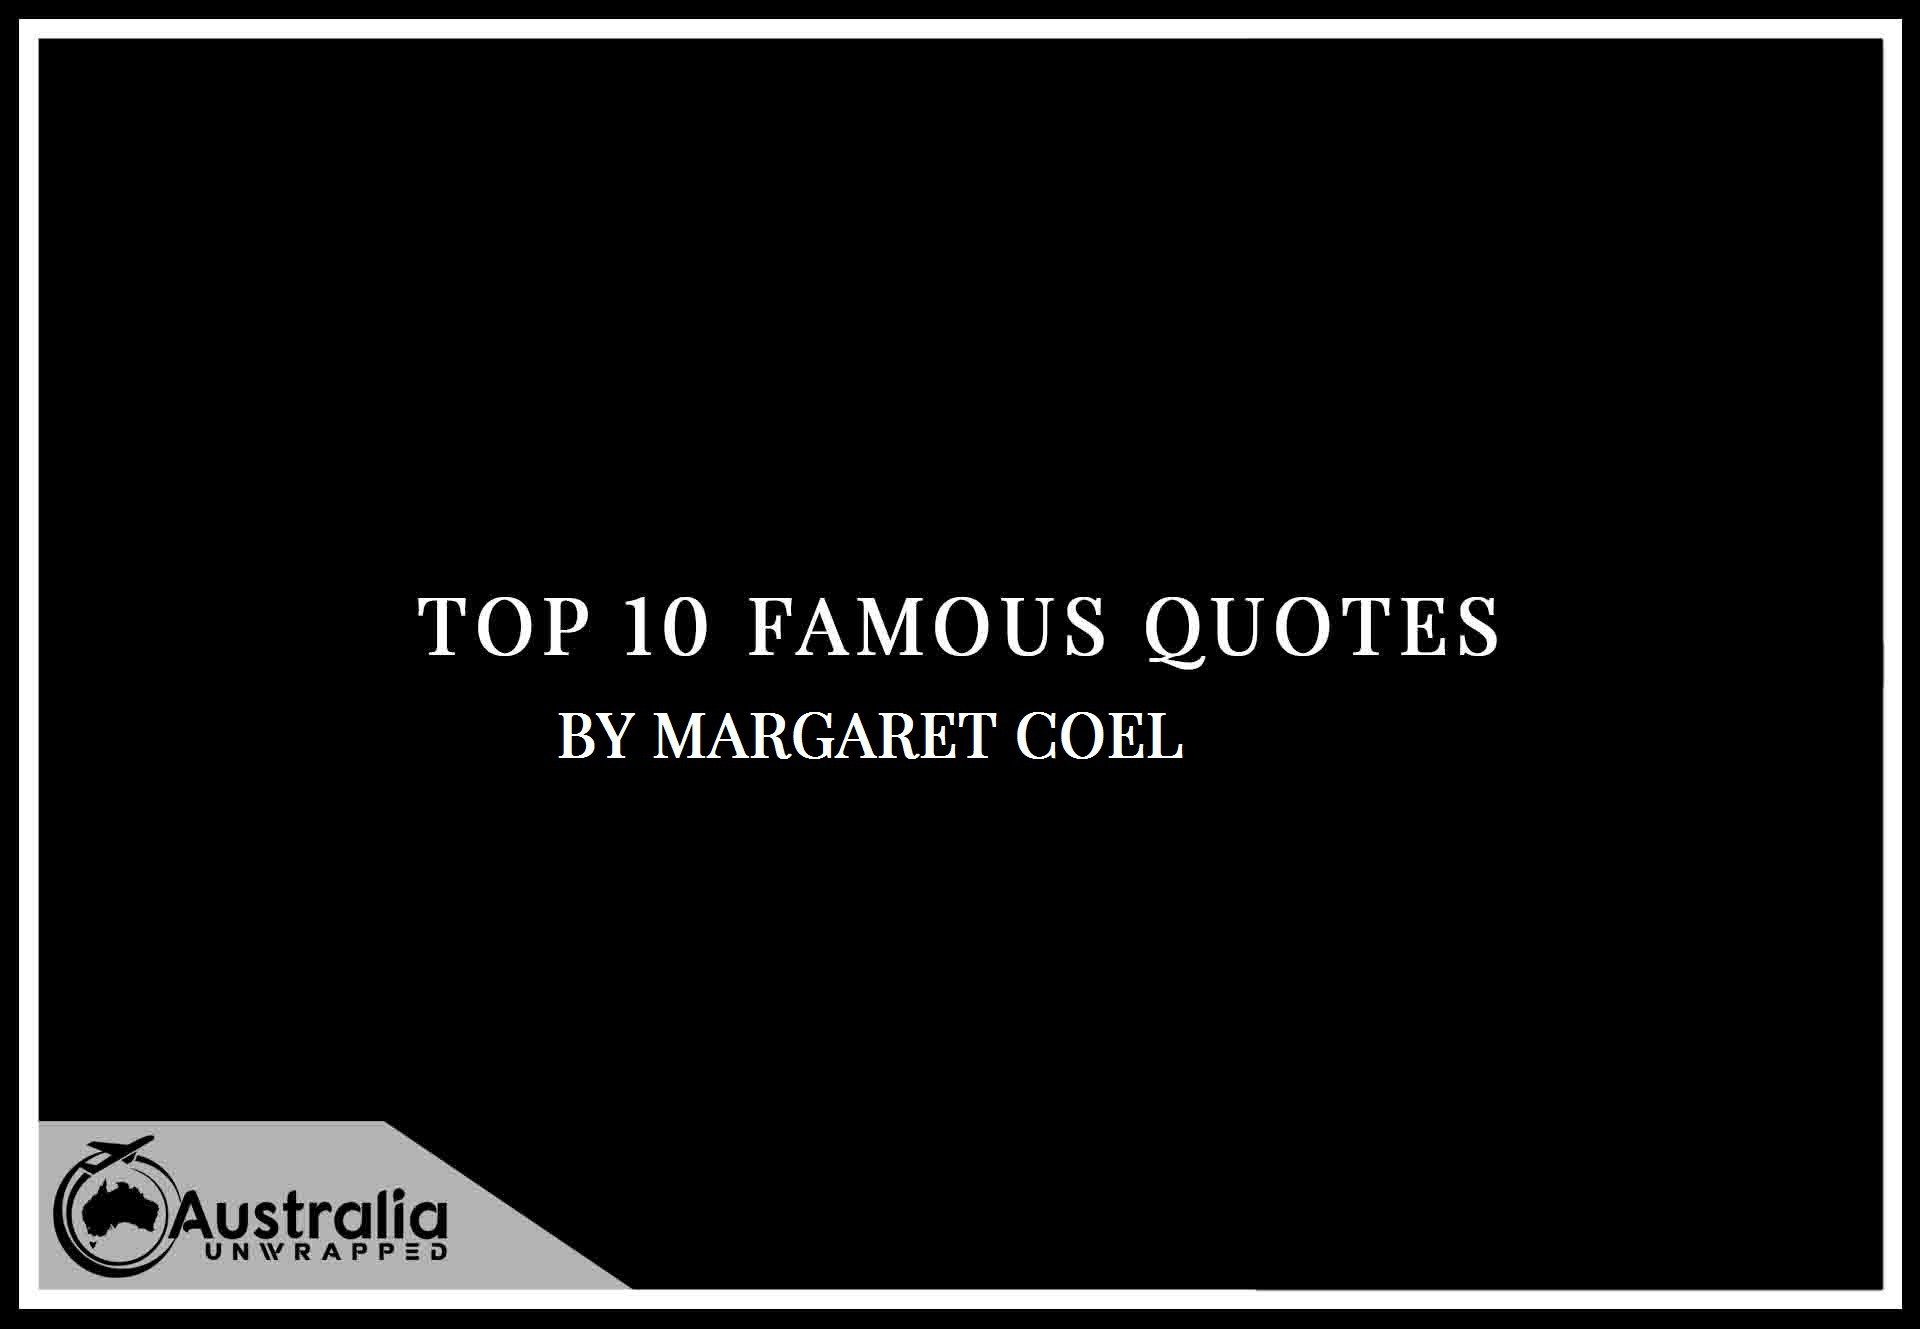 Margaret Coel's Top 10 Popular and Famous Quotes